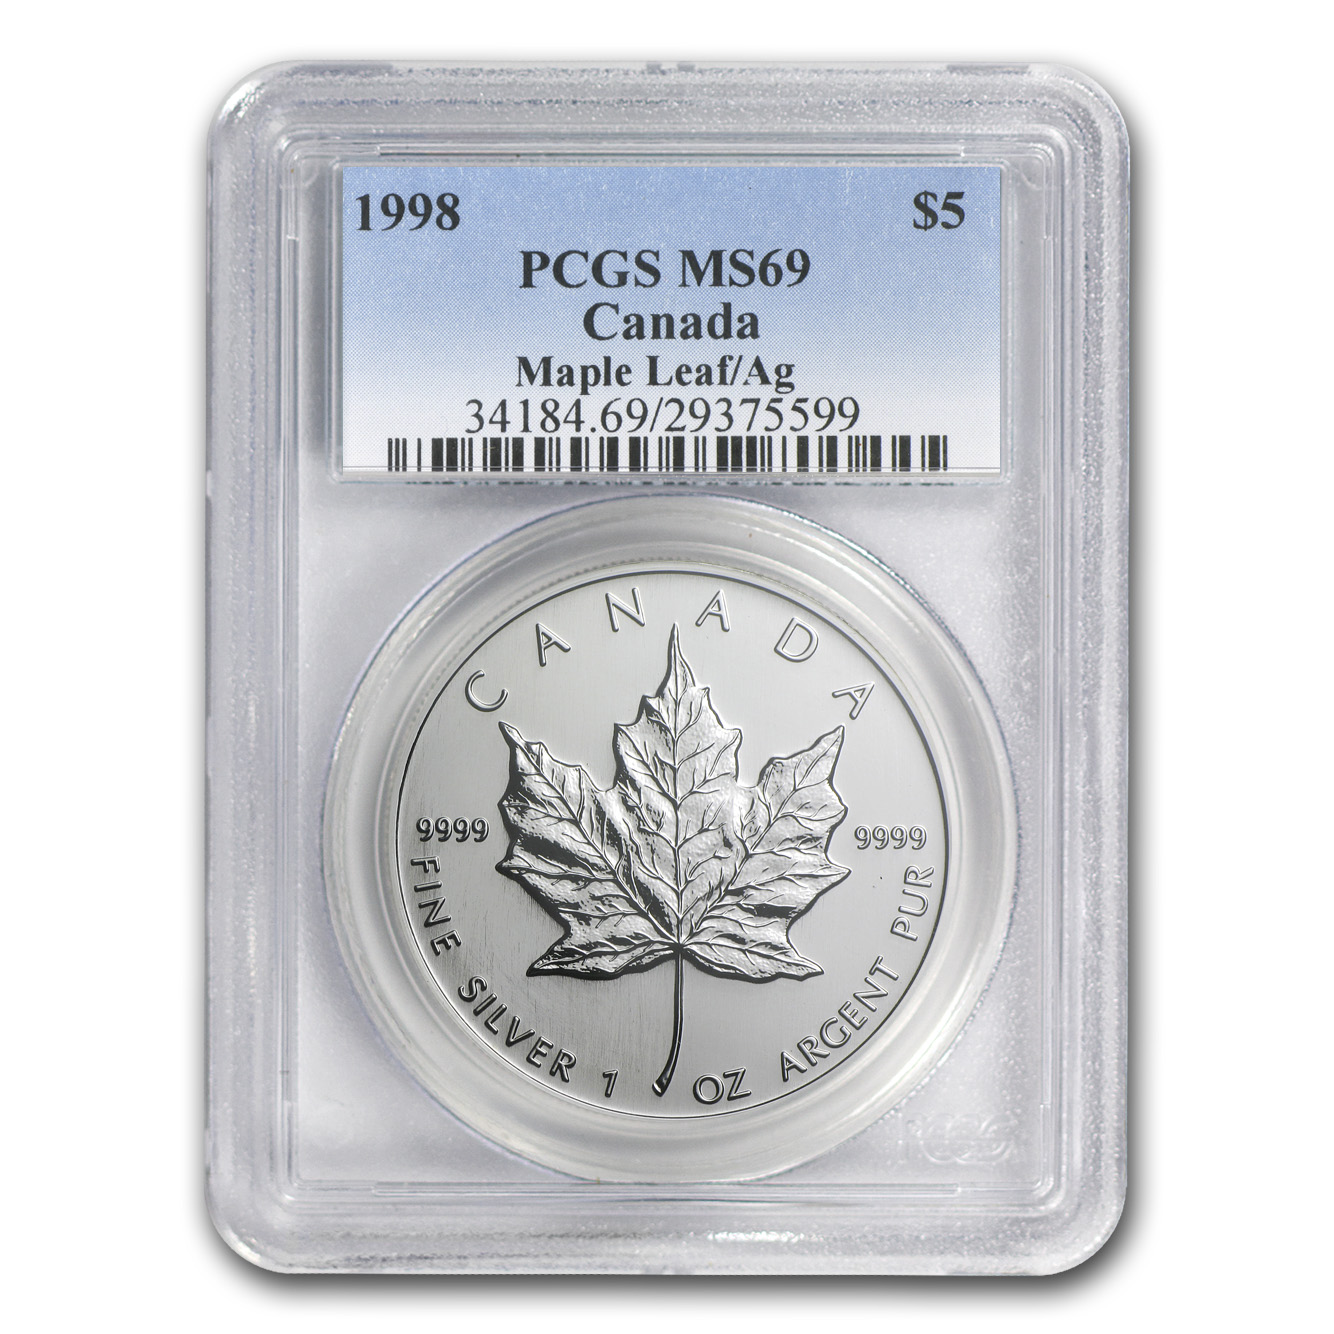 1998 1 oz Silver Canadian Maple Leaf MS-69 PCGS